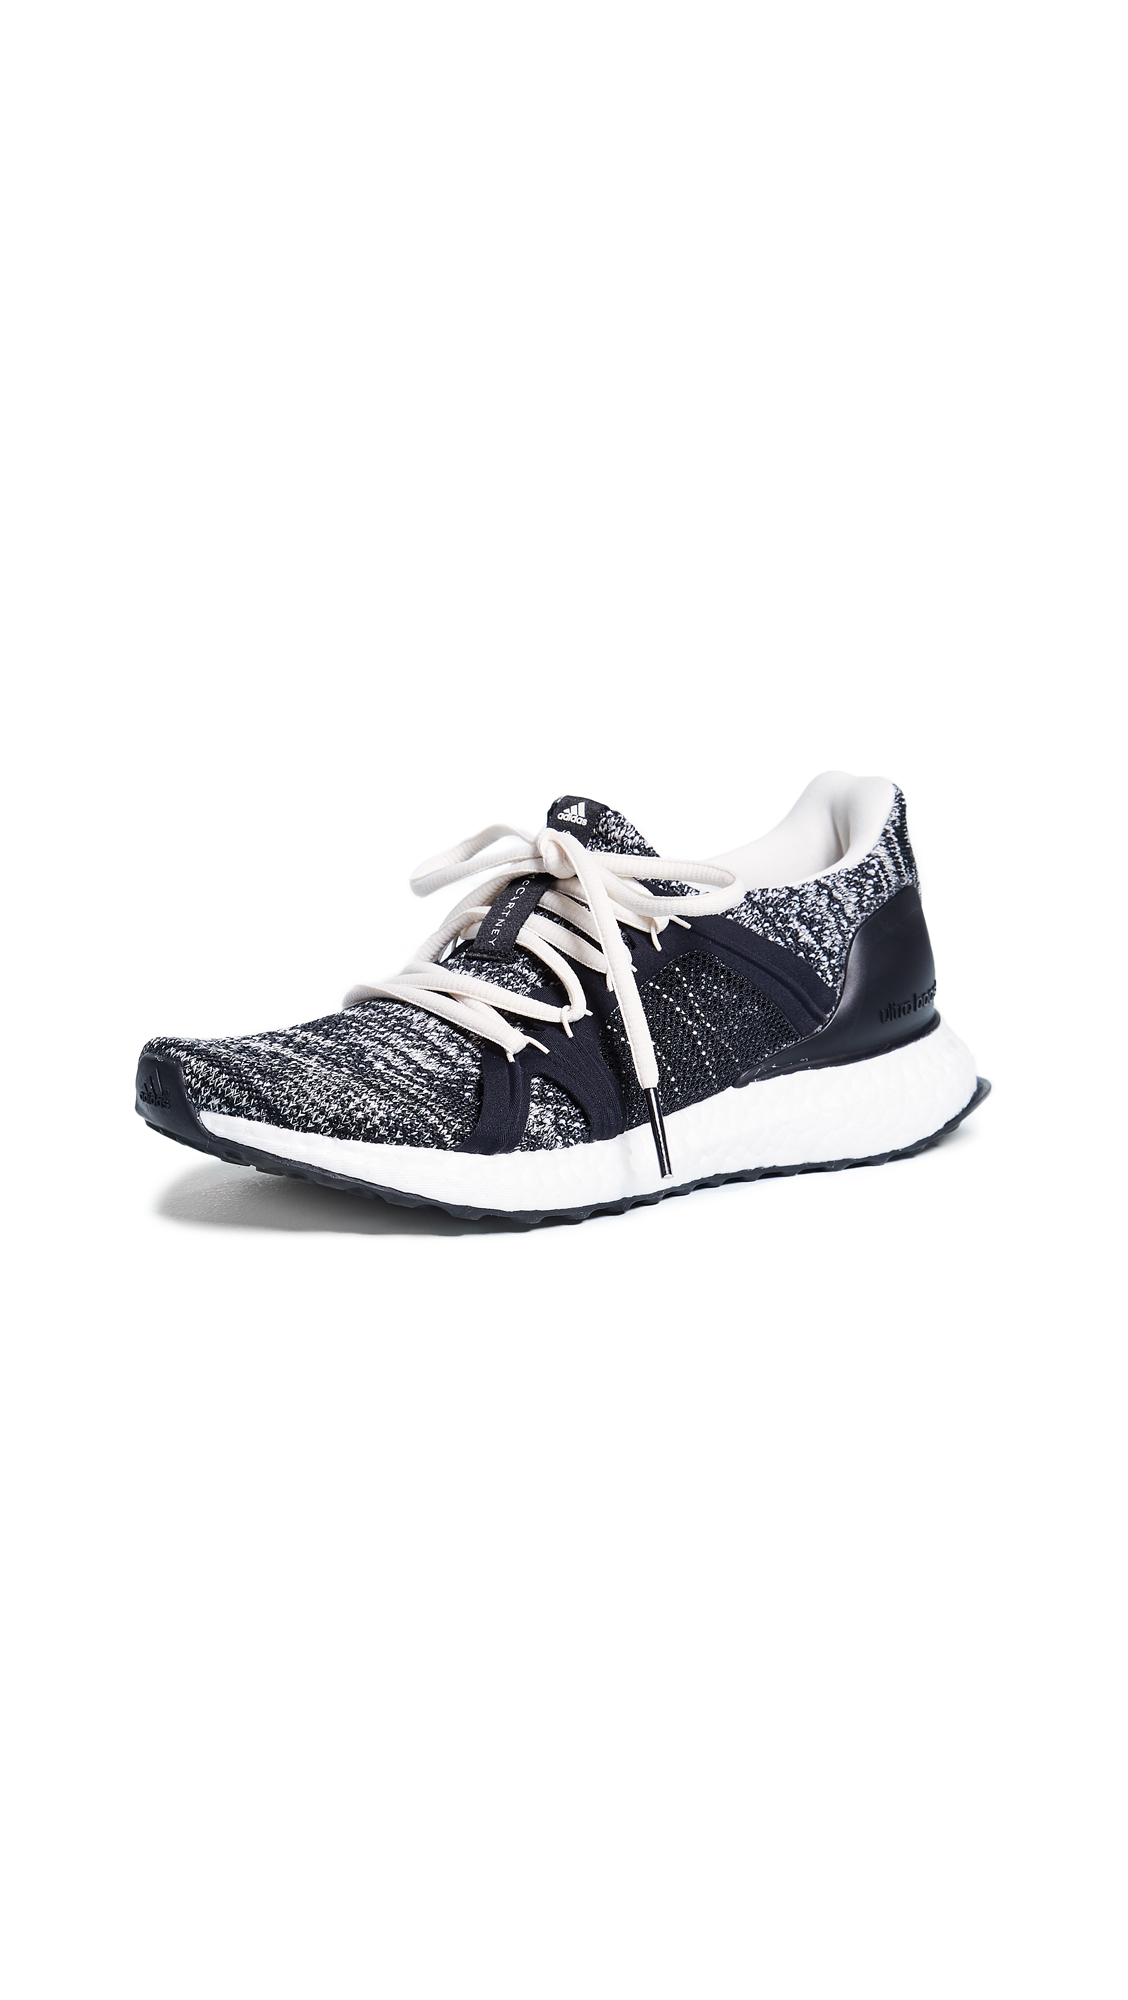 adidas by Stella McCartney UltraBOOST PARLEY Sneakers - Core Black/Black/Chalk White